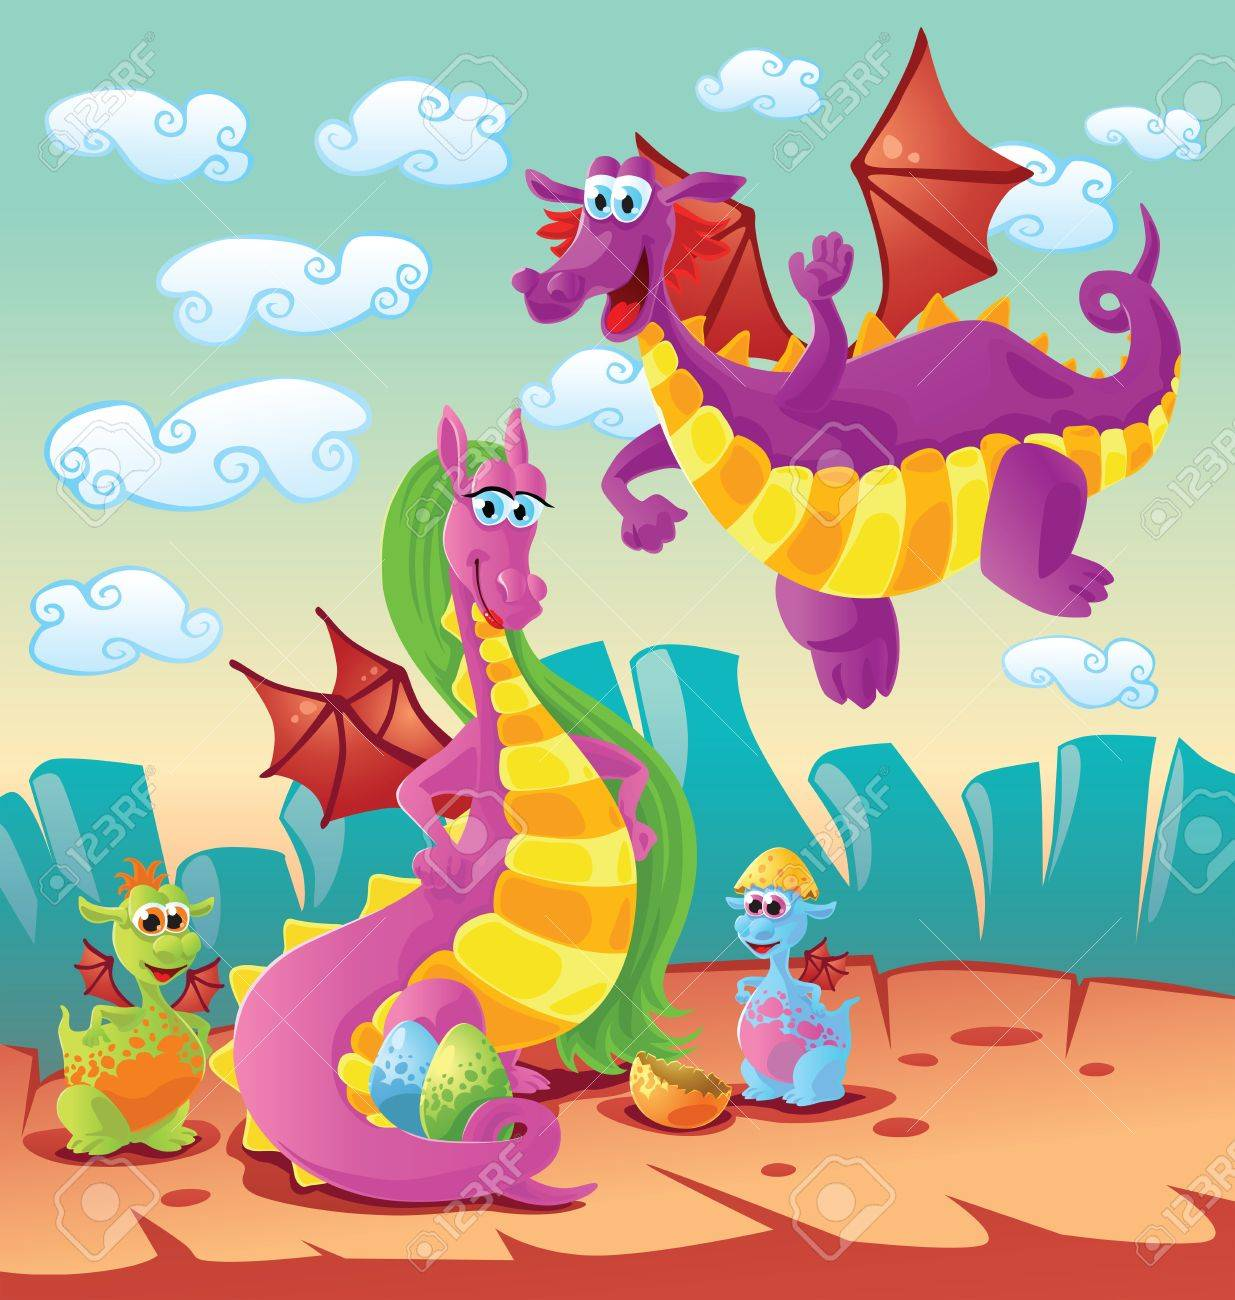 EXCLUSIVE - Actual Dragon Family Pictures 12462621-dragon-family-scene-Stock-Vector-dragon-cartoon-kids